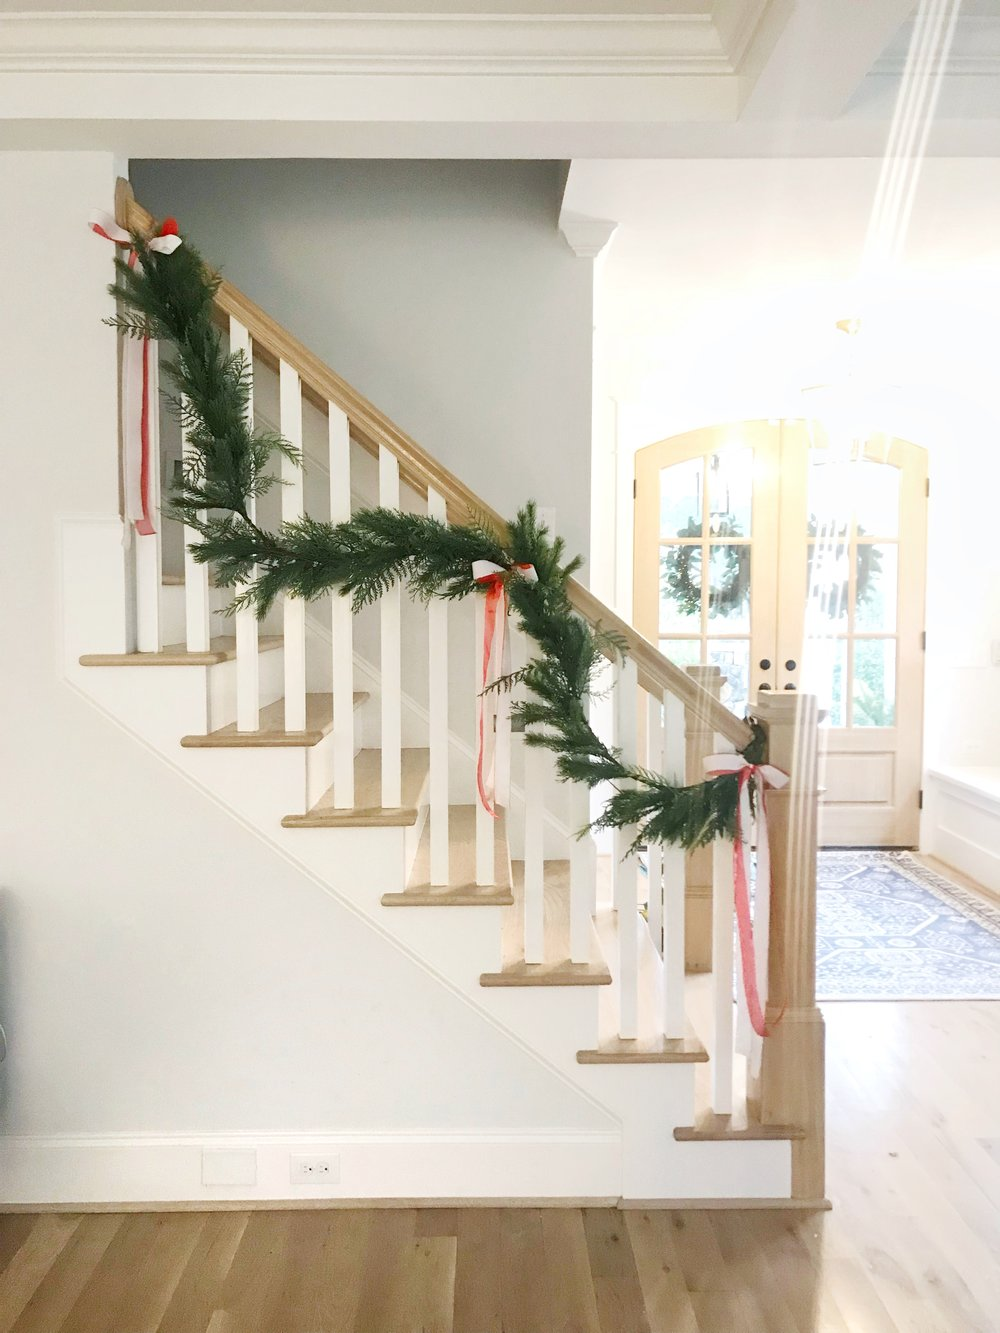 The Best Faux Garlands For the Holidays From Budget On Up